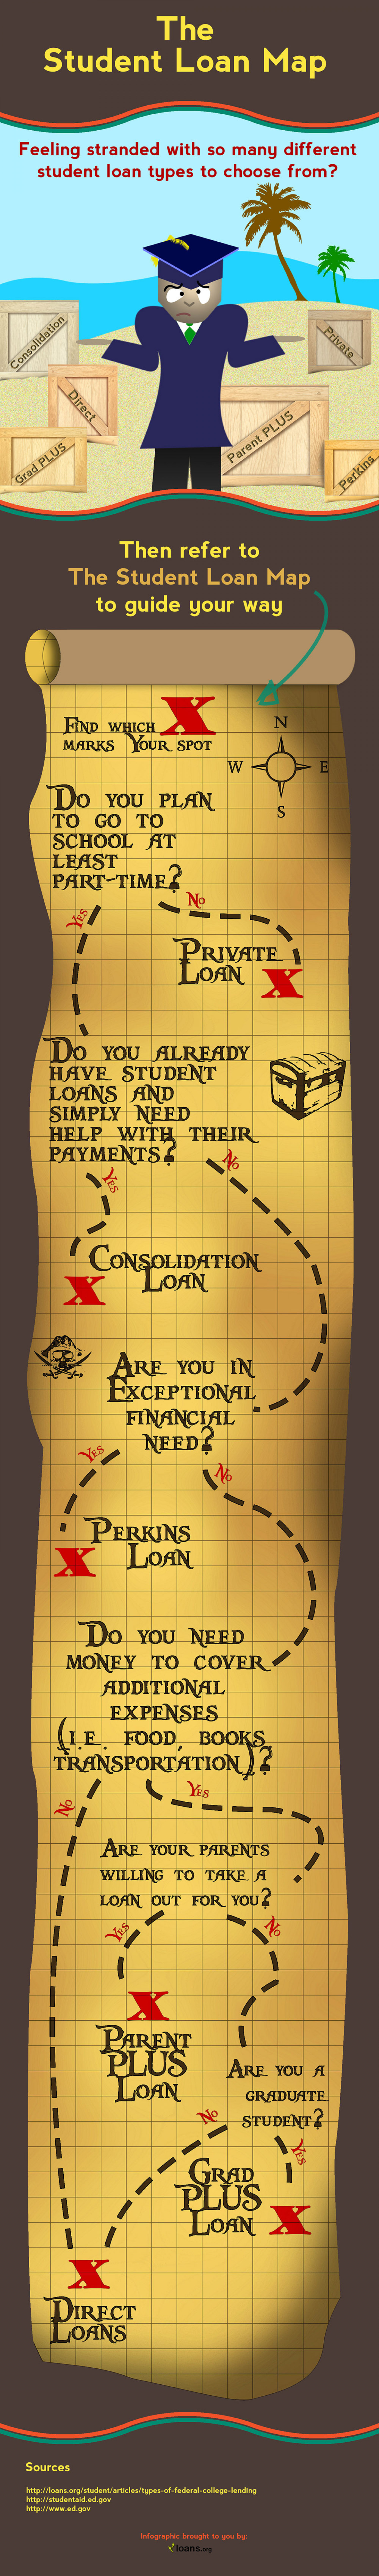 The Student Loan Map Infographic